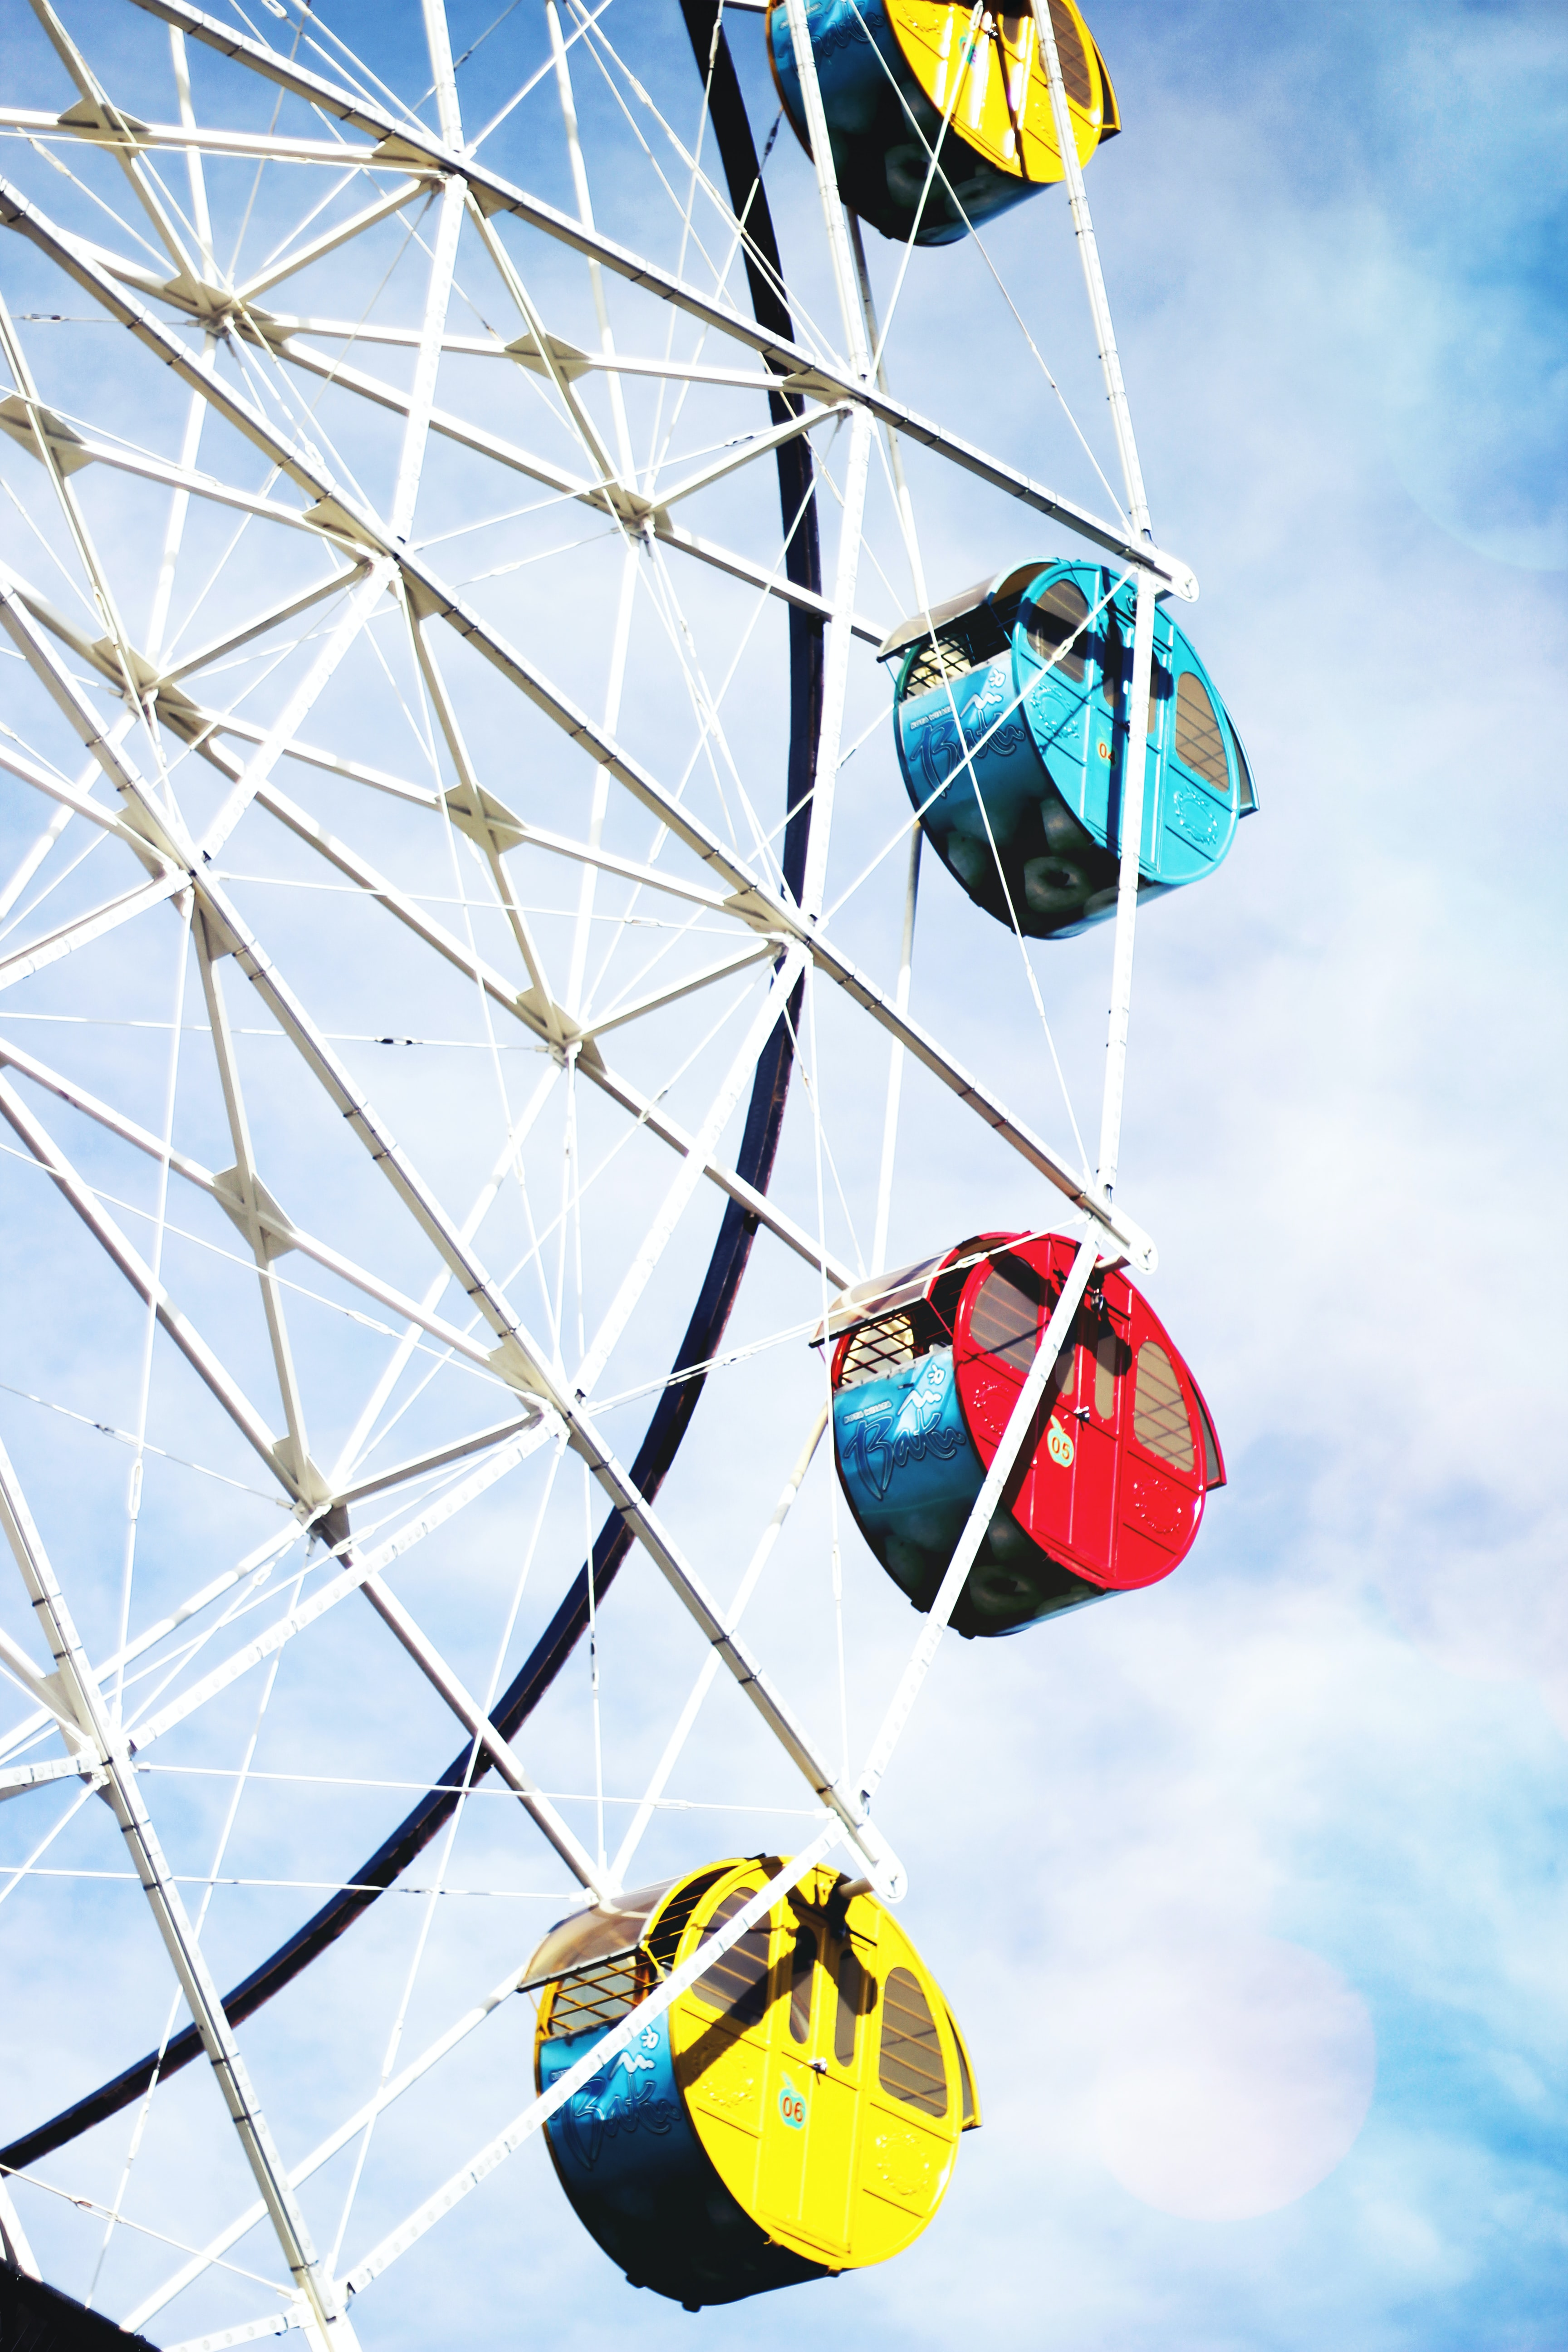 worm's-eye view photography of ferris wheel